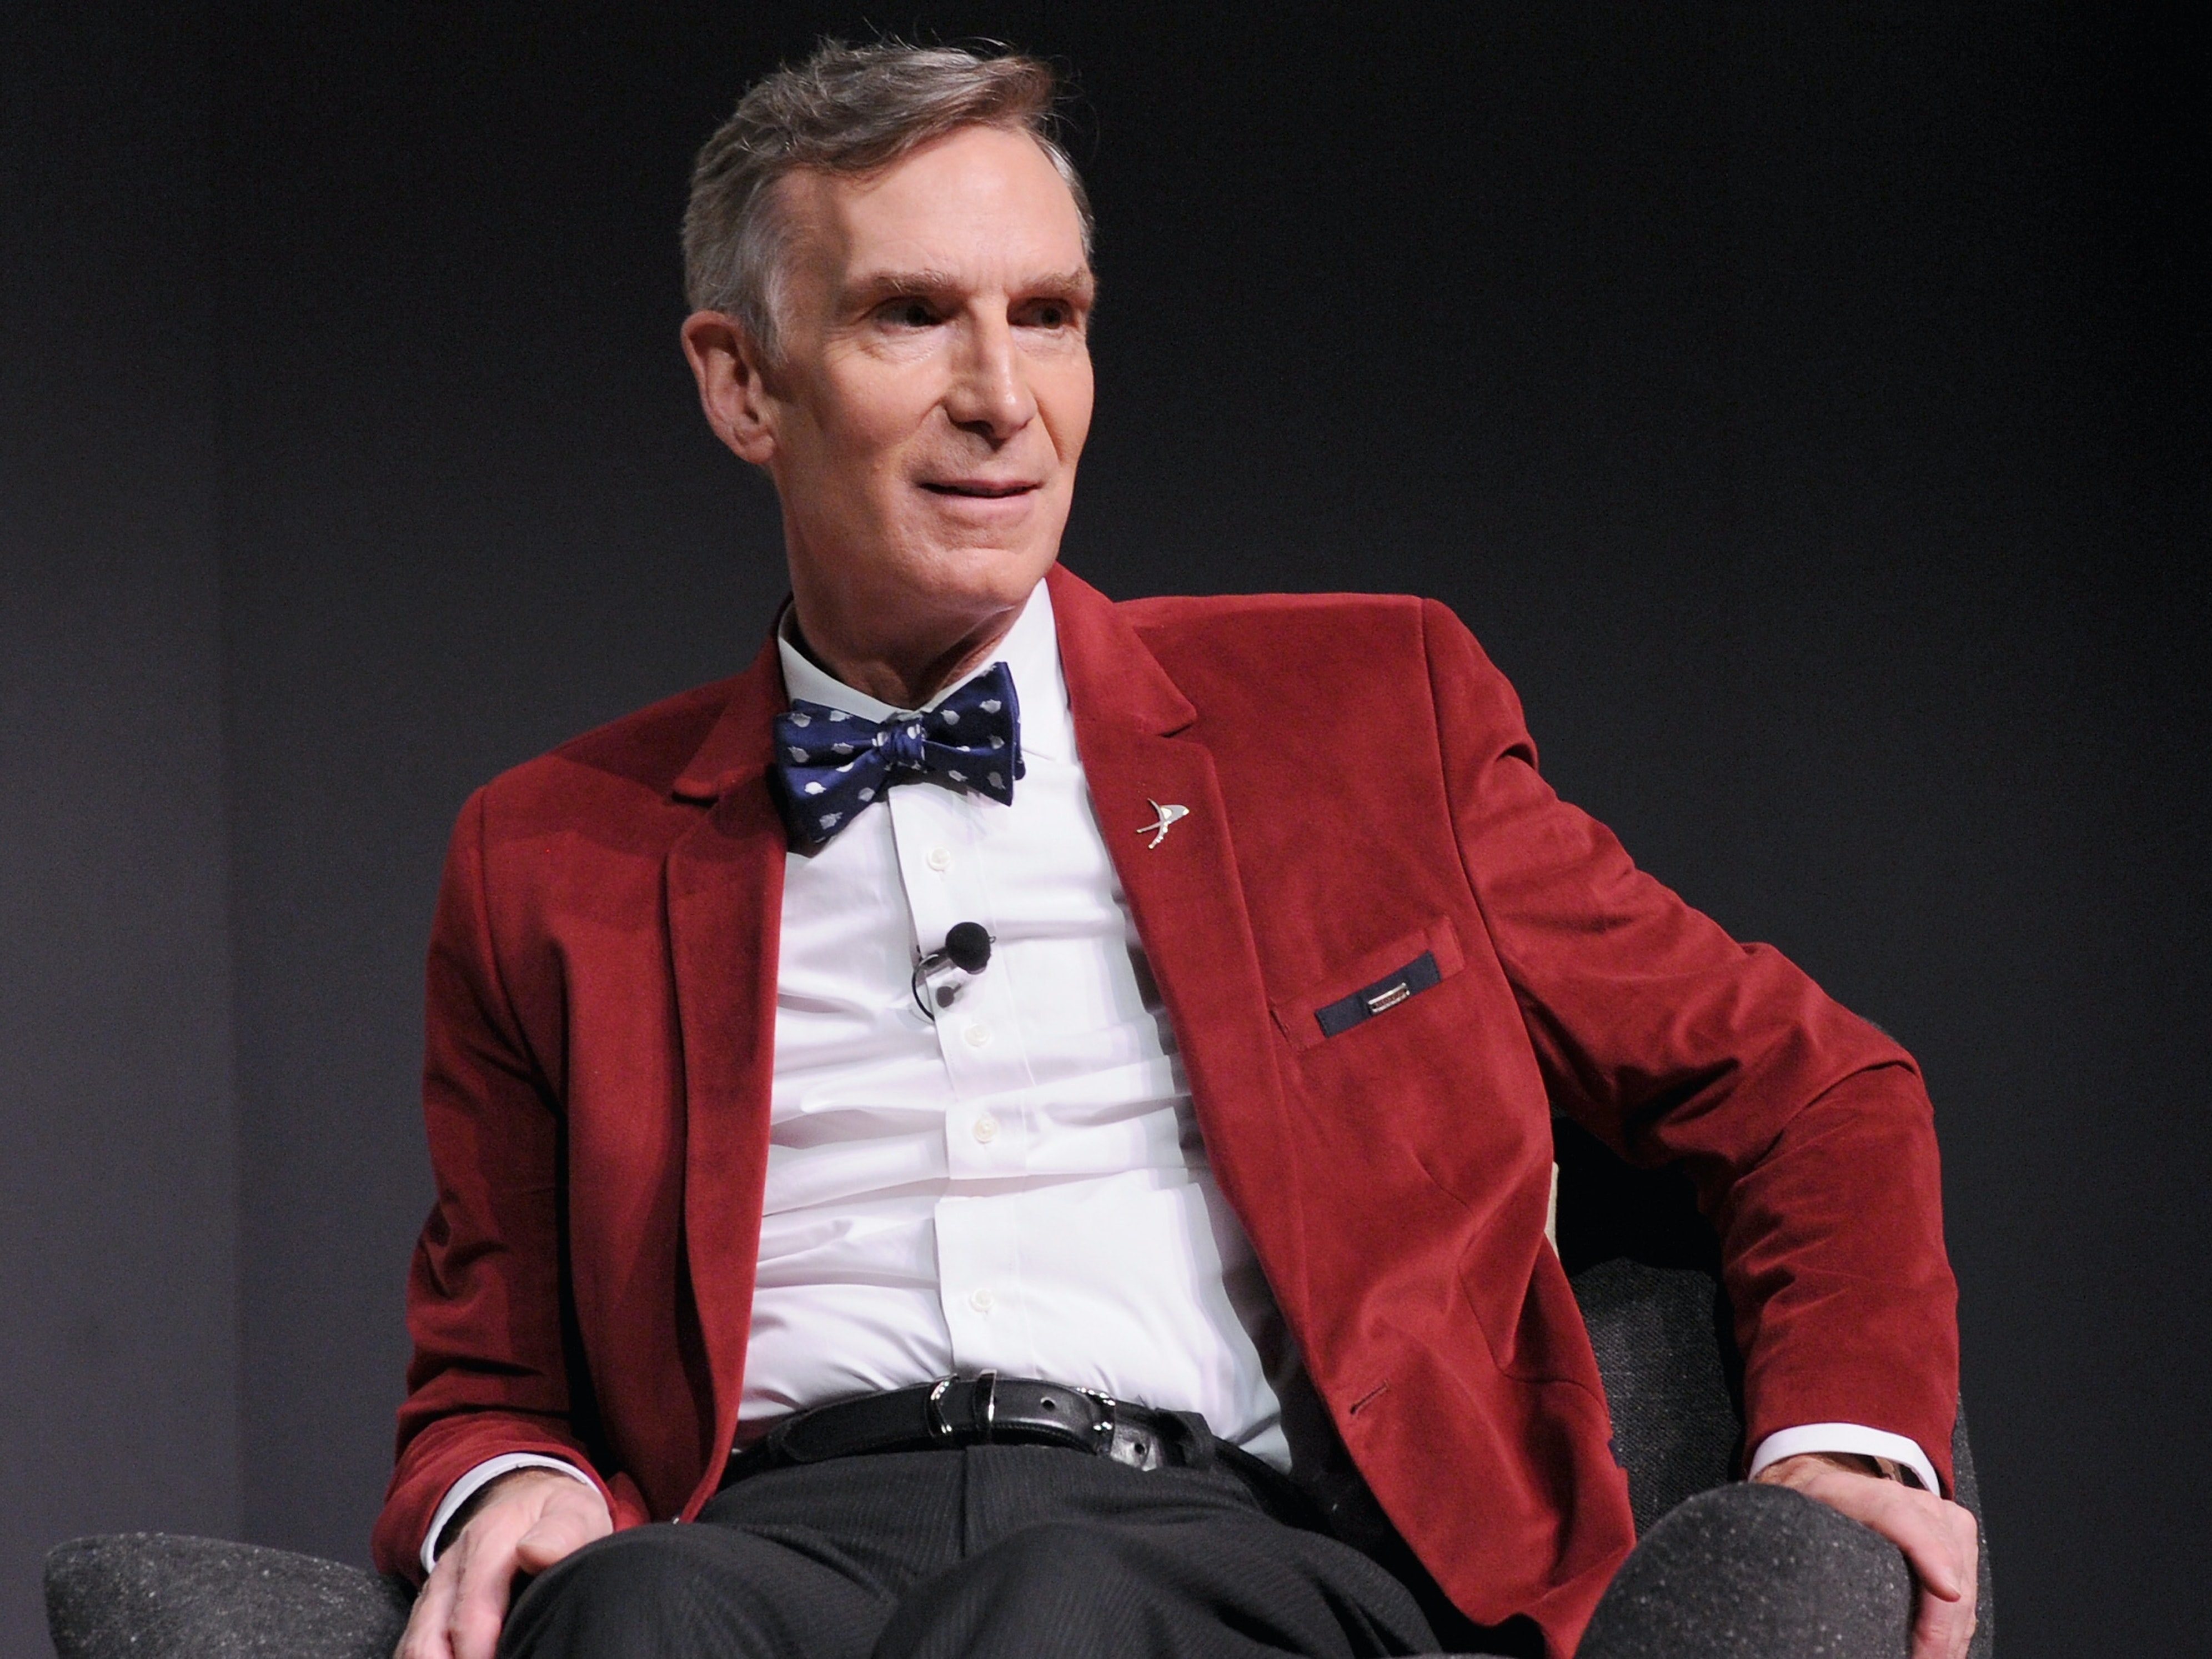 NEW YORK, NY - NOVEMBER 10:  Educator Bill Nye speaks onstage during 'How Creativity Fuels Science With Steve Aoki And Bill Nye' at The Fast Company Innovation Festival on November 10, 2015 in New York City.  (Photo by Craig Barritt/Getty Images for Fast Company)